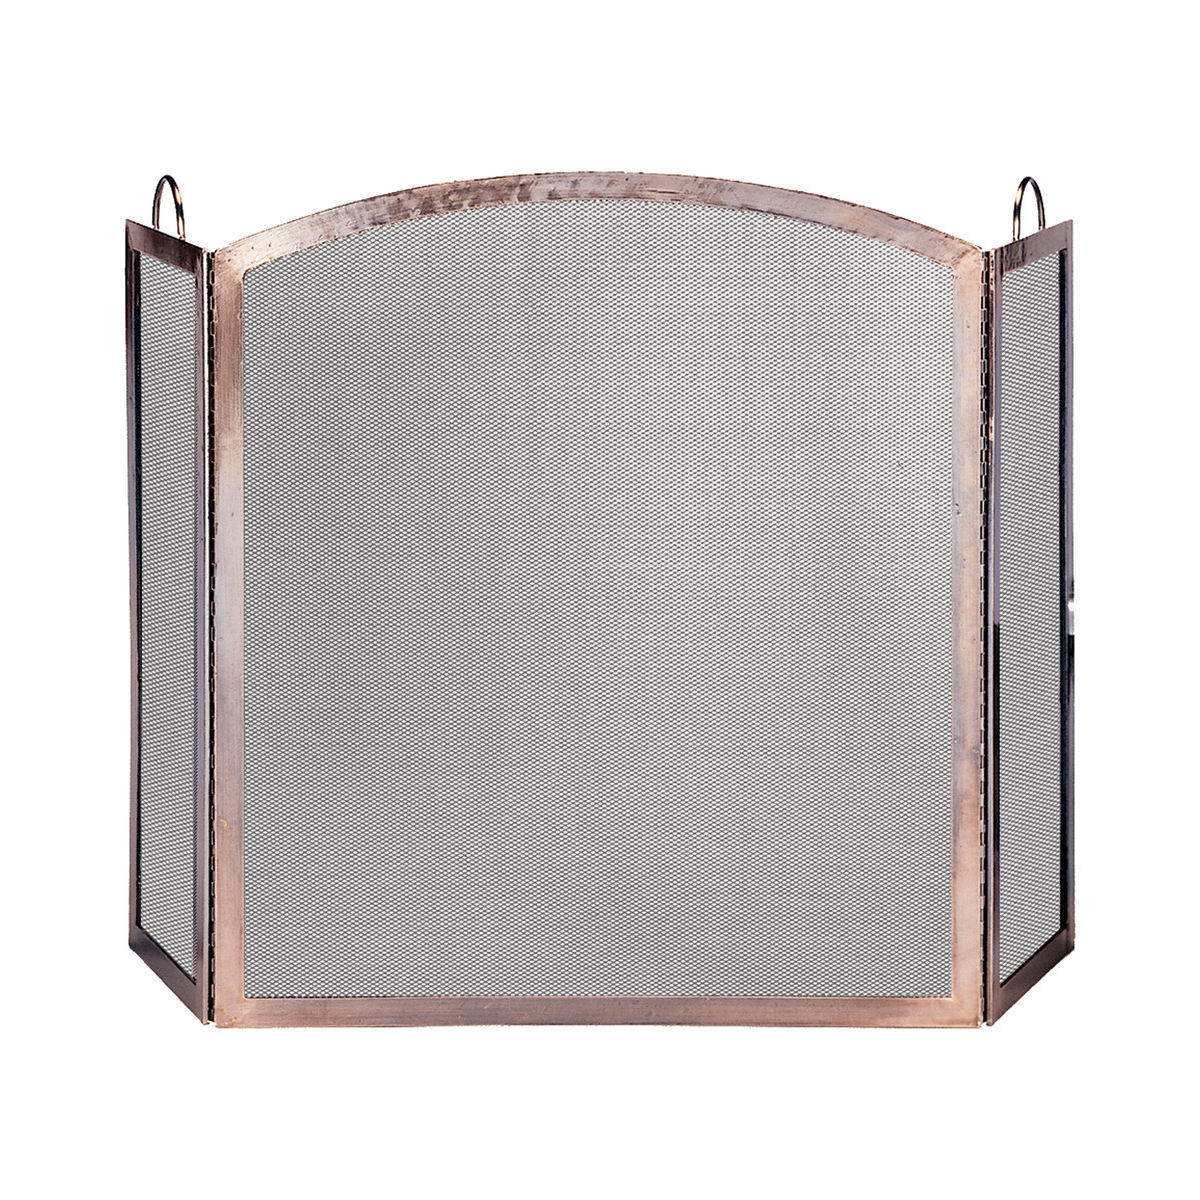 Three-panel metal screen with copper accents photo